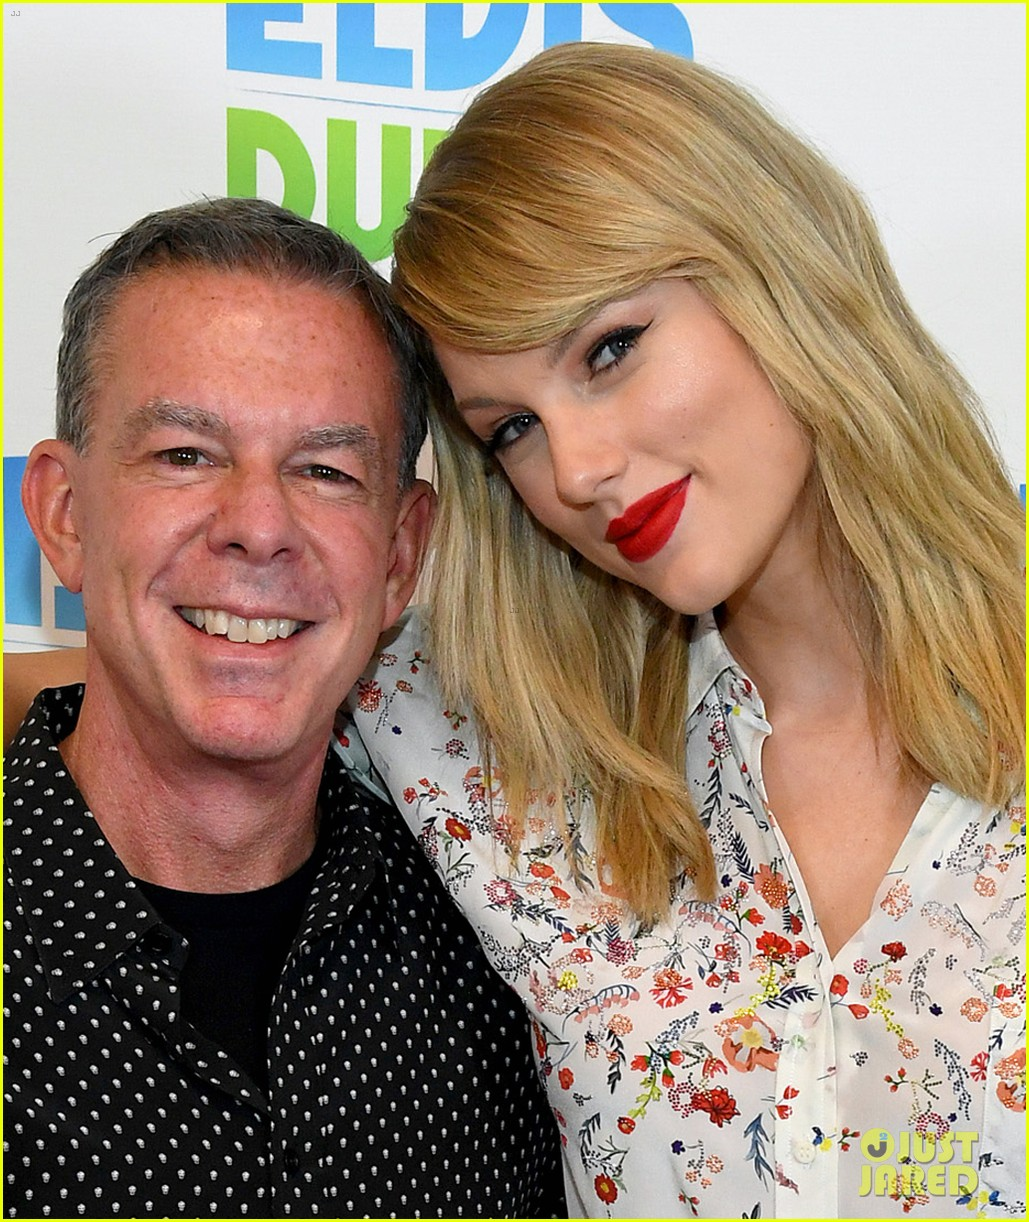 Taylor Swift Talks About Scooter Braun Feud In Elvis Duran Interview Photo 1254655 Scooter Braun Taylor Swift Pictures Just Jared Jr